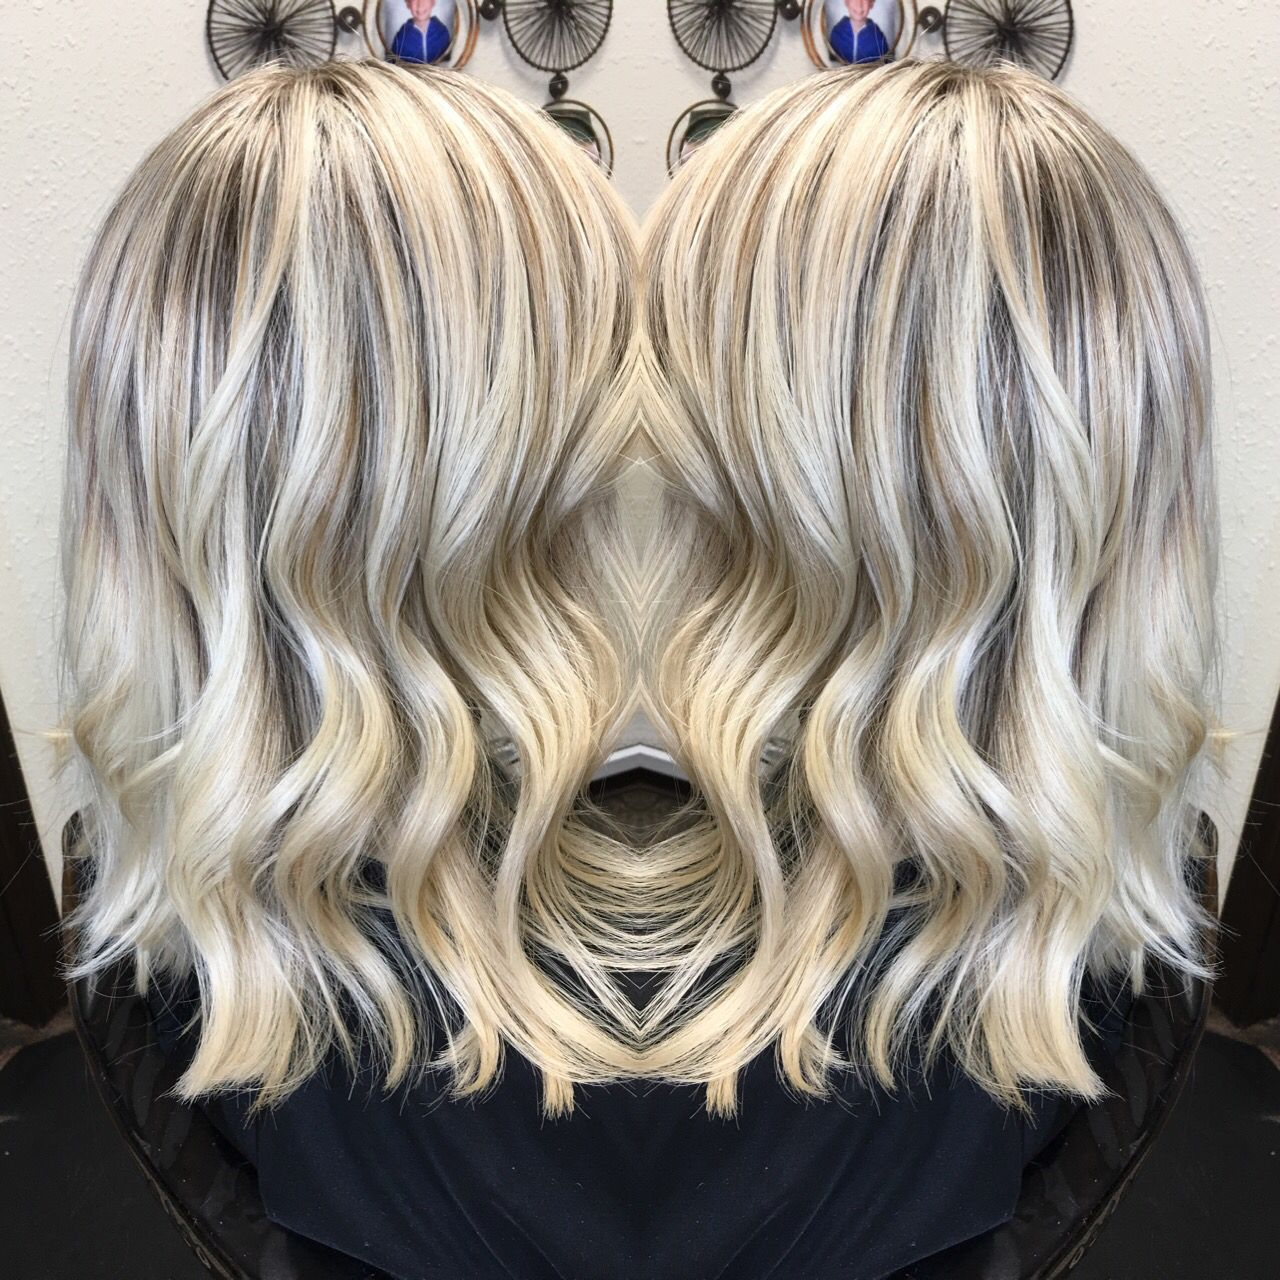 Icy White Hair Platinum Highlight And Lowlight Olaplex Long